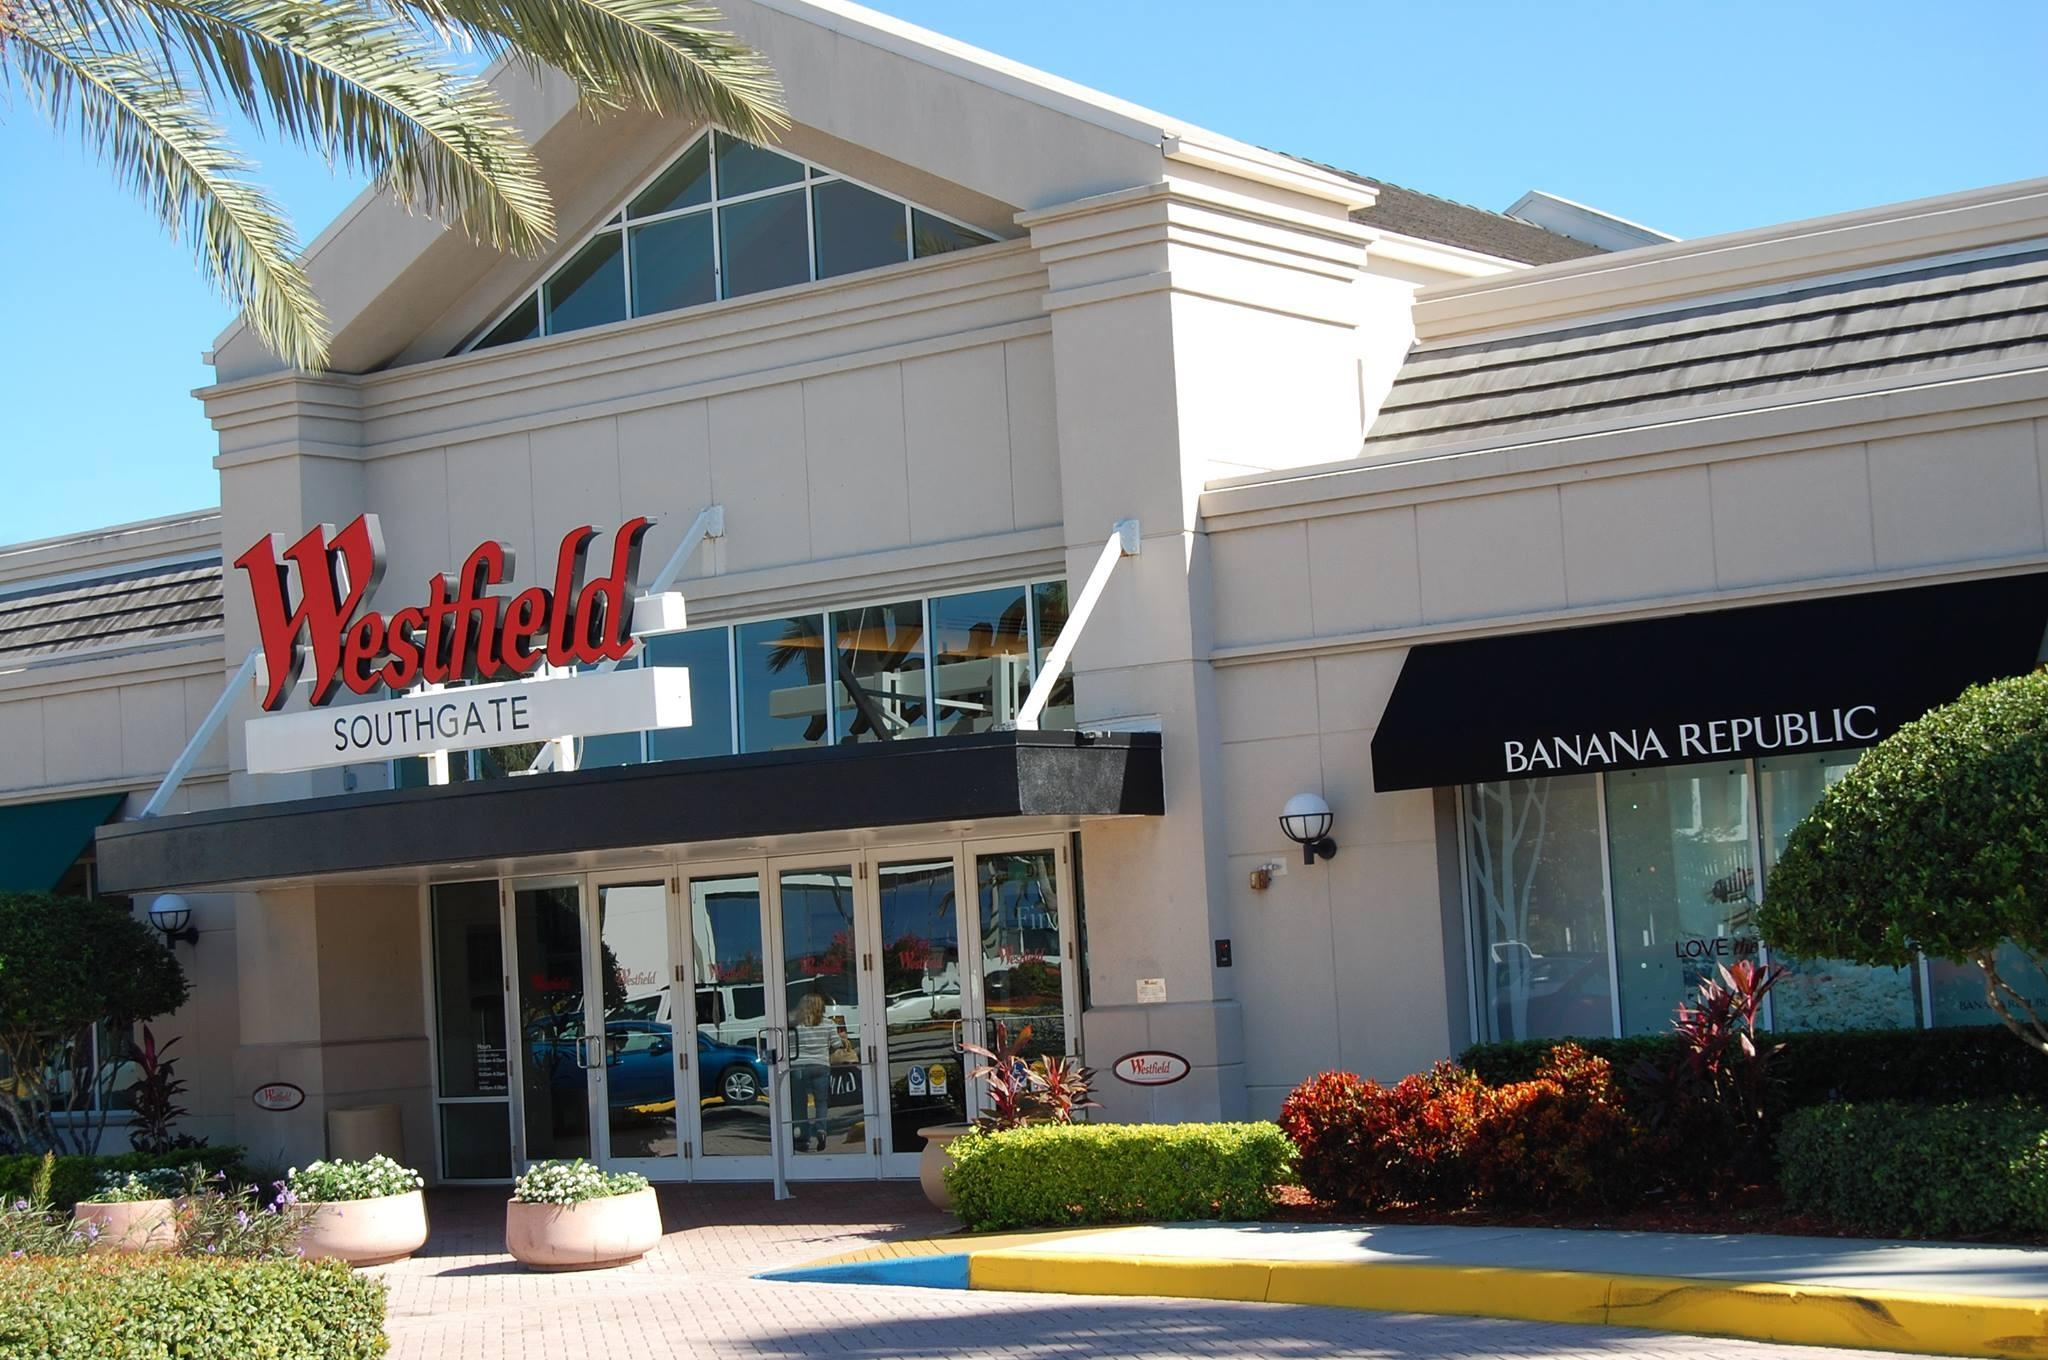 About The Mall at University Town Center. DOMINANT SHOPPING AND DINING DESTINATION Serving the growing Sarasota market and the surrounding coastal areas. Sarasota is known as the cultural center of Florida's Gulf Coast.